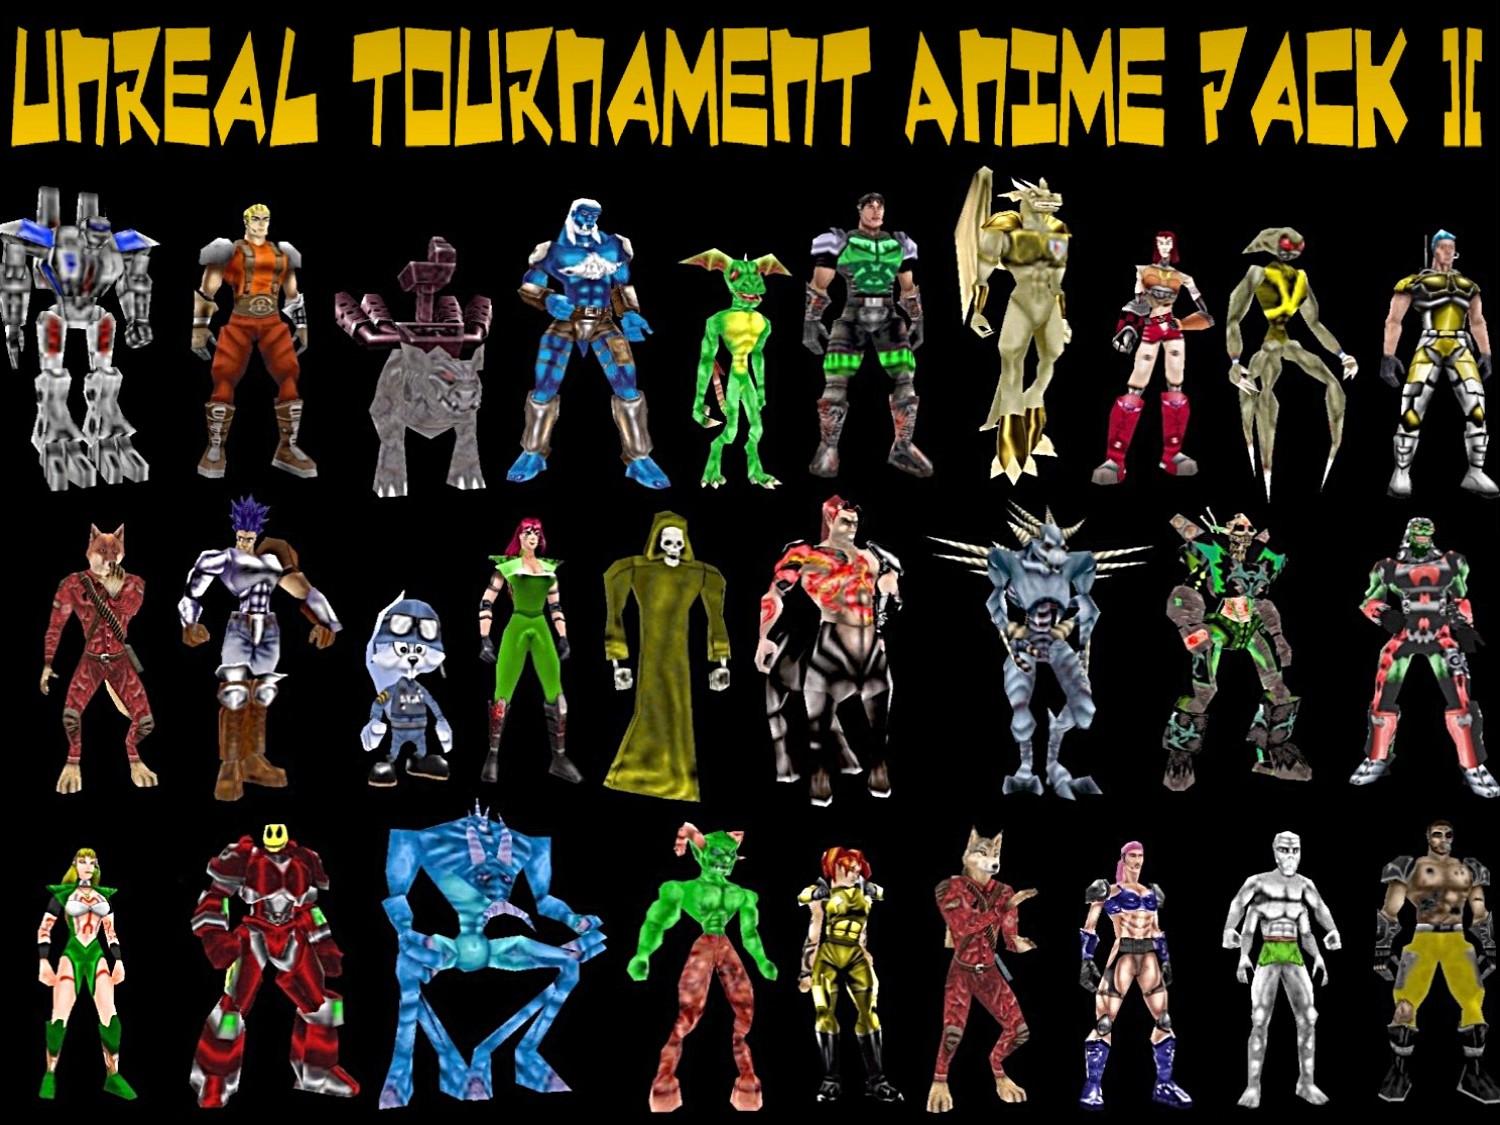 Unreal tournament anime pack